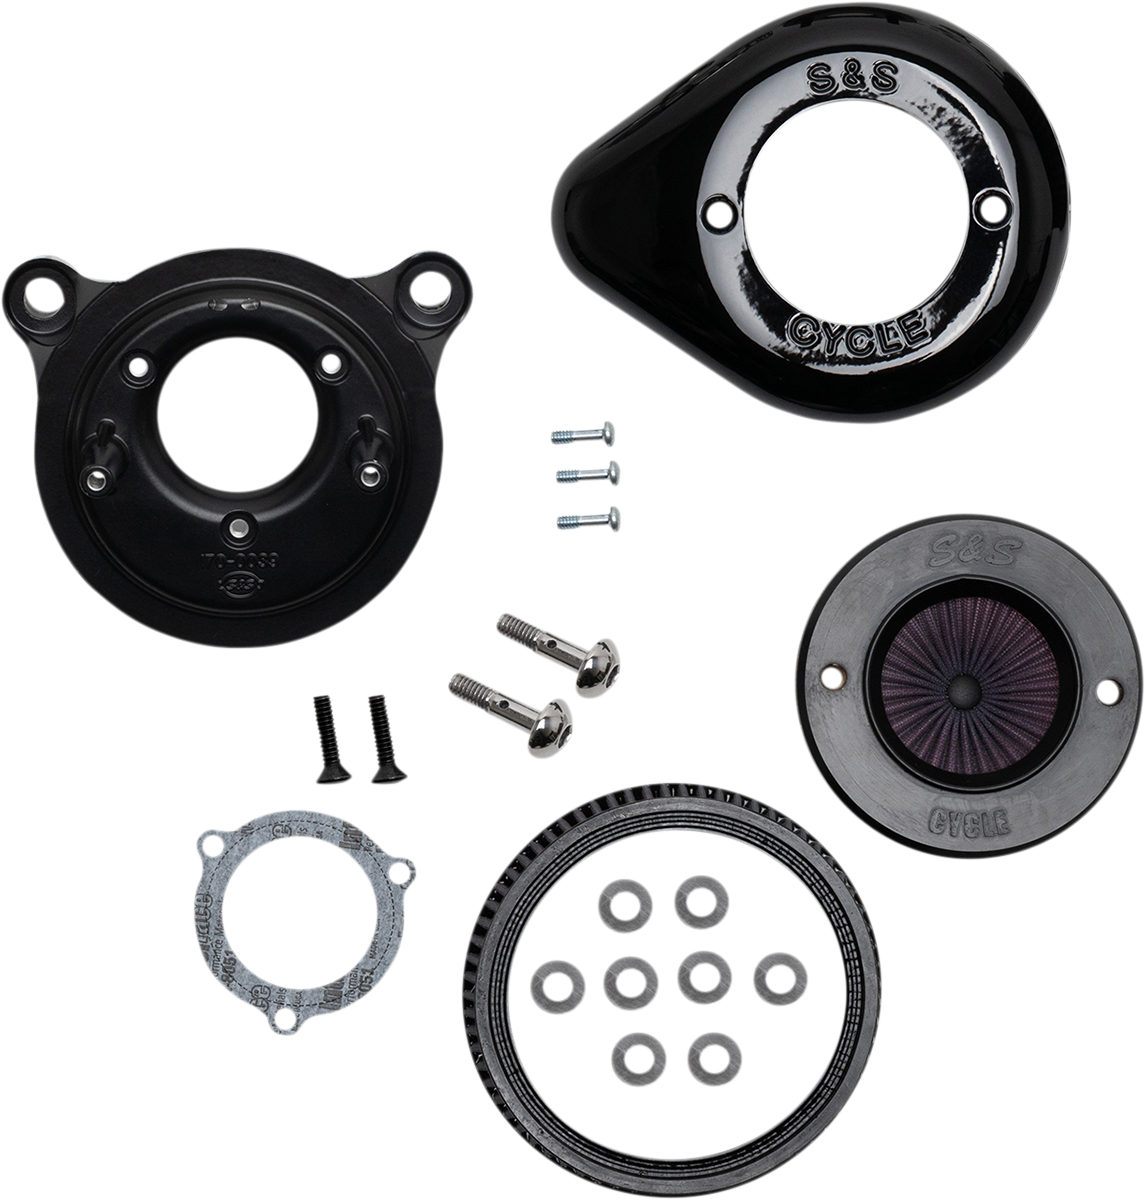 S&S Air Stinger Stealth Air Filter Cleaner Kit 08-17 Harley Softail Touring FLHX